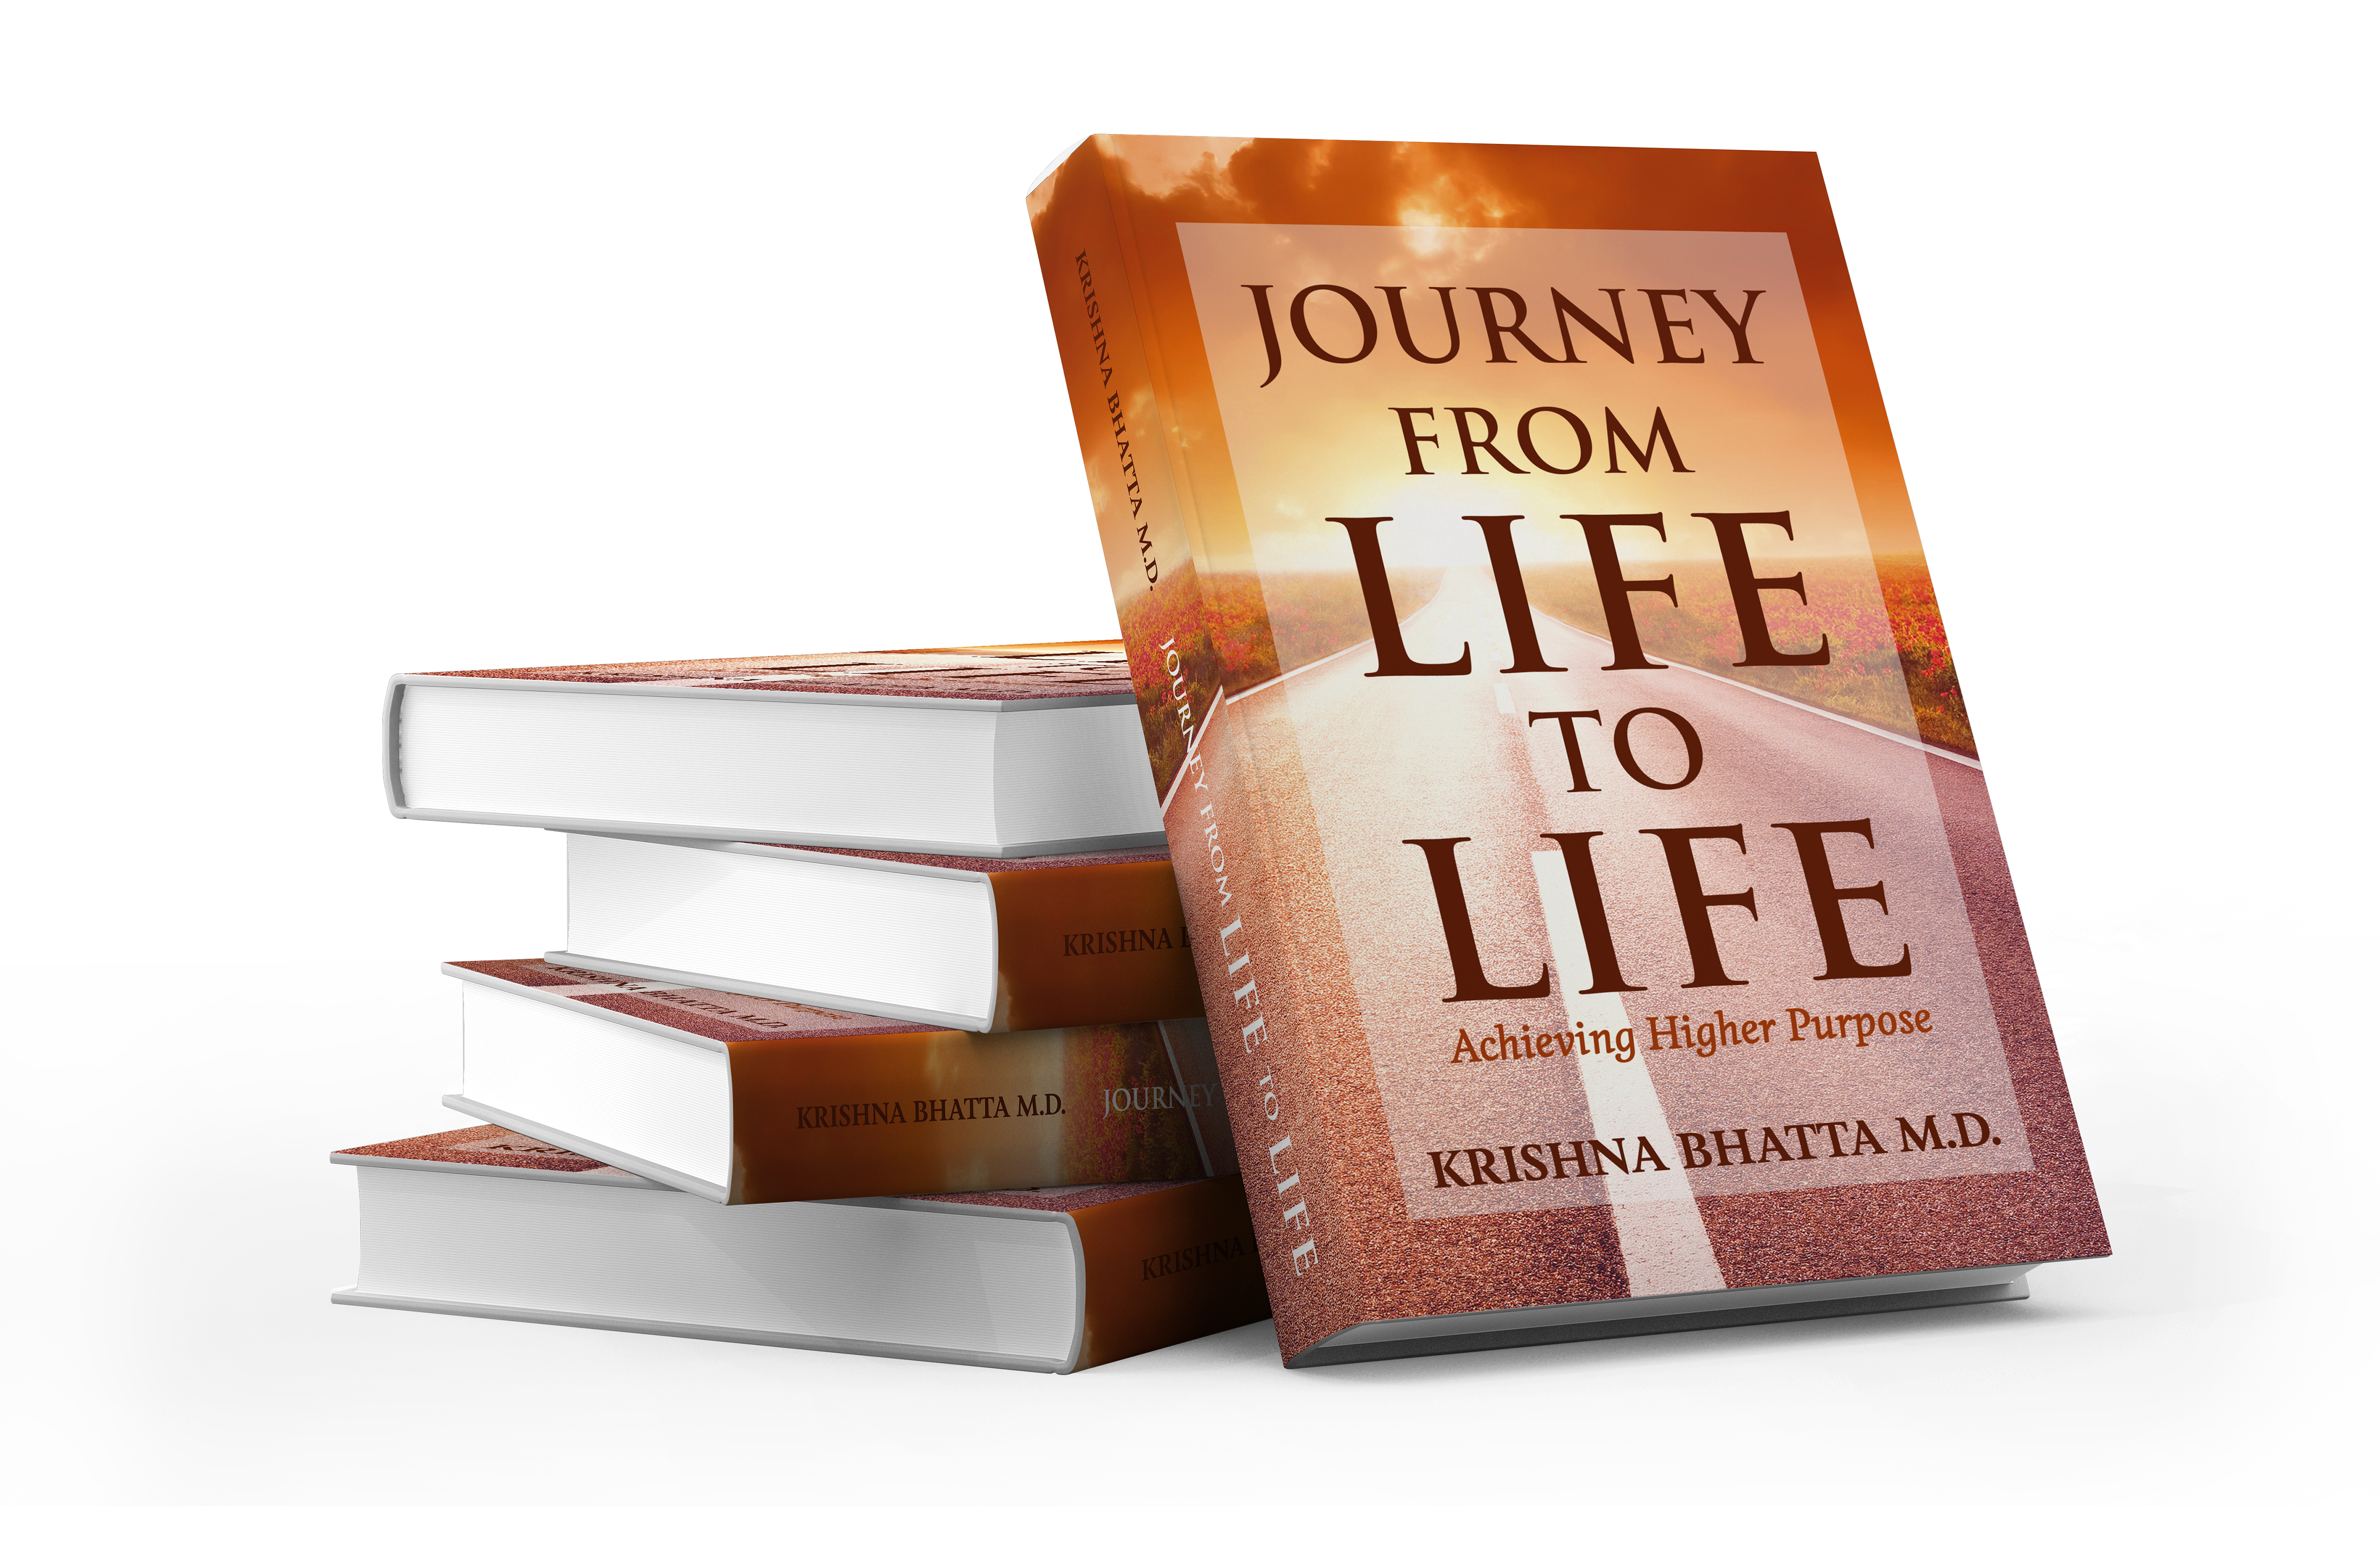 Krishna Bhatta's Journey From Life to Life Demystifies Life and Death